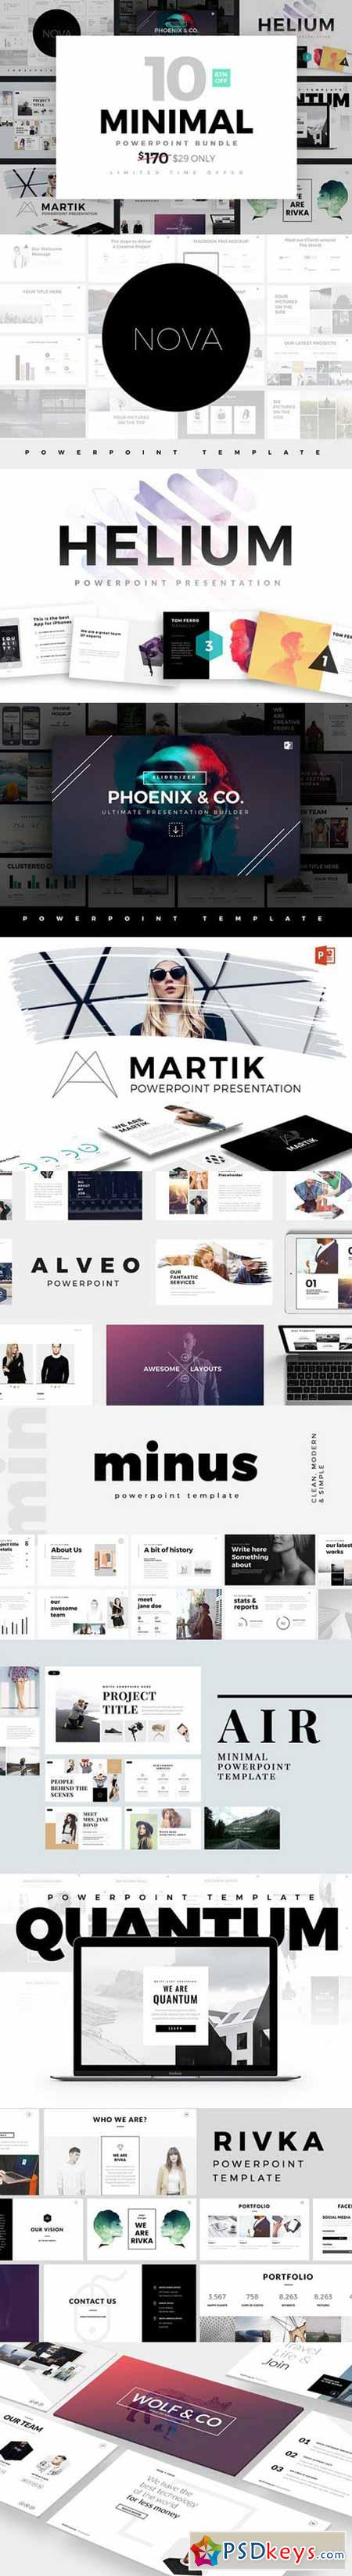 Minimal powerpoint template bundle 618622 free download photoshop minimal powerpoint template bundle 618622 toneelgroepblik Choice Image